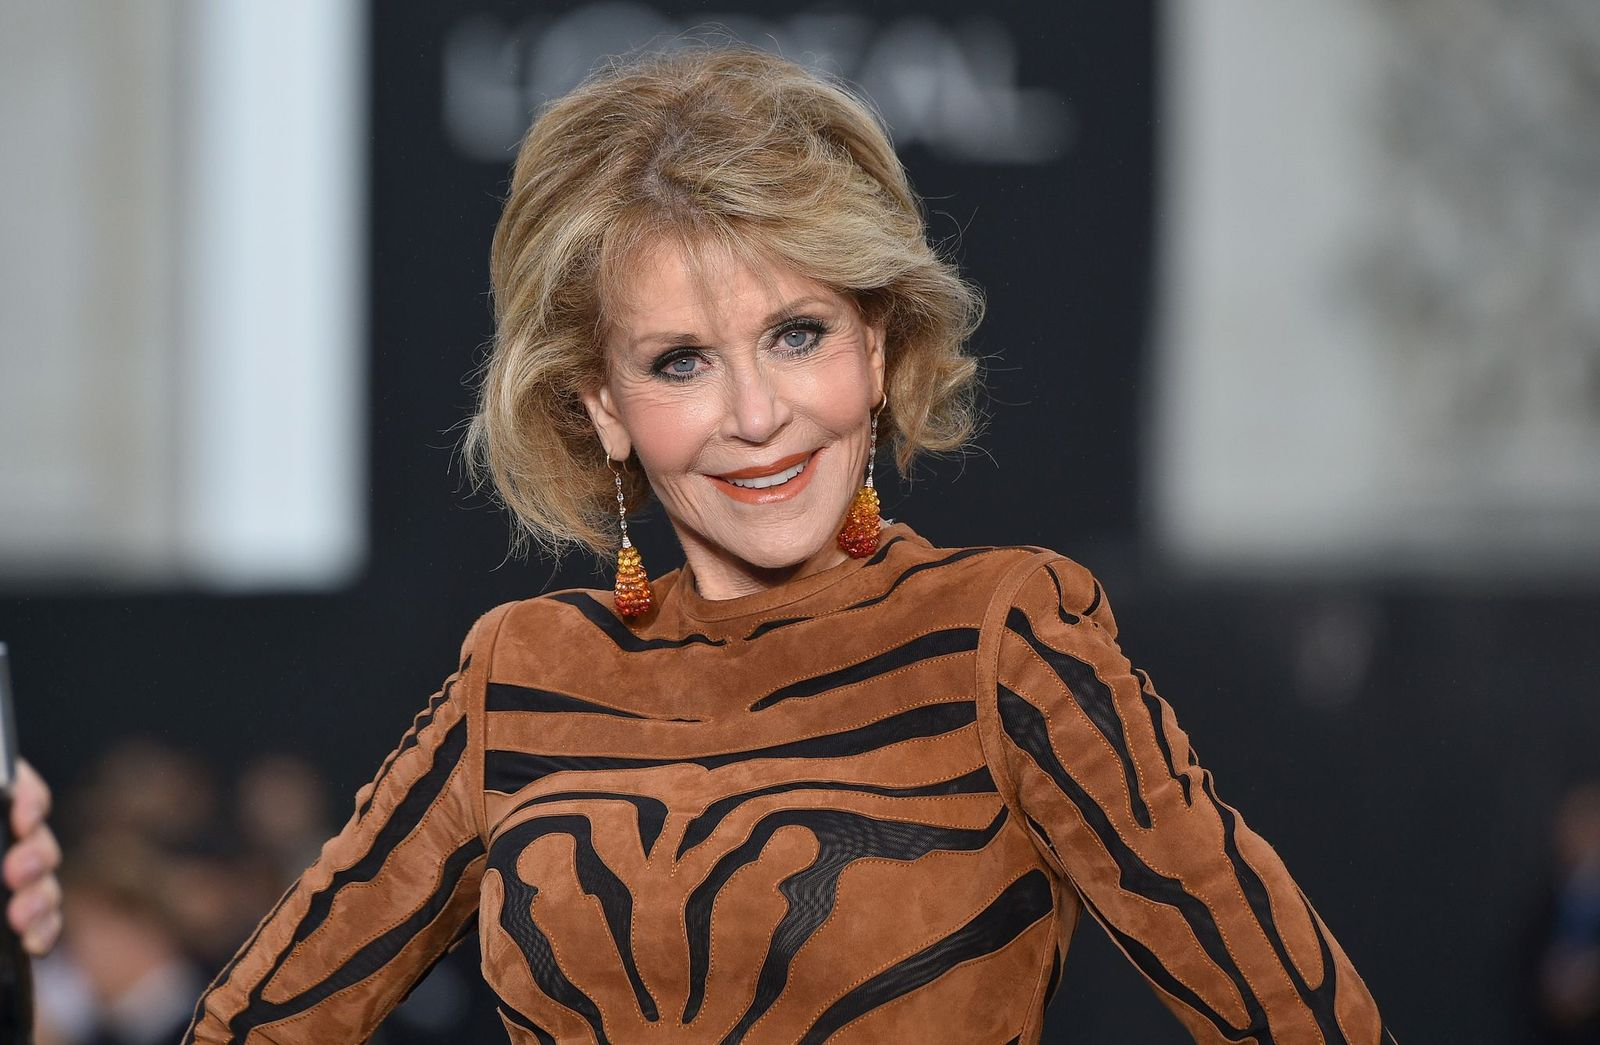 Jane Fonda at the rehearsal before Le Defile L'Oreal Paris as part of Paris Fashion Week Womenswear Spring/Summeron October 1, 2017, in France | Photo:Kristy Sparow/Getty Images